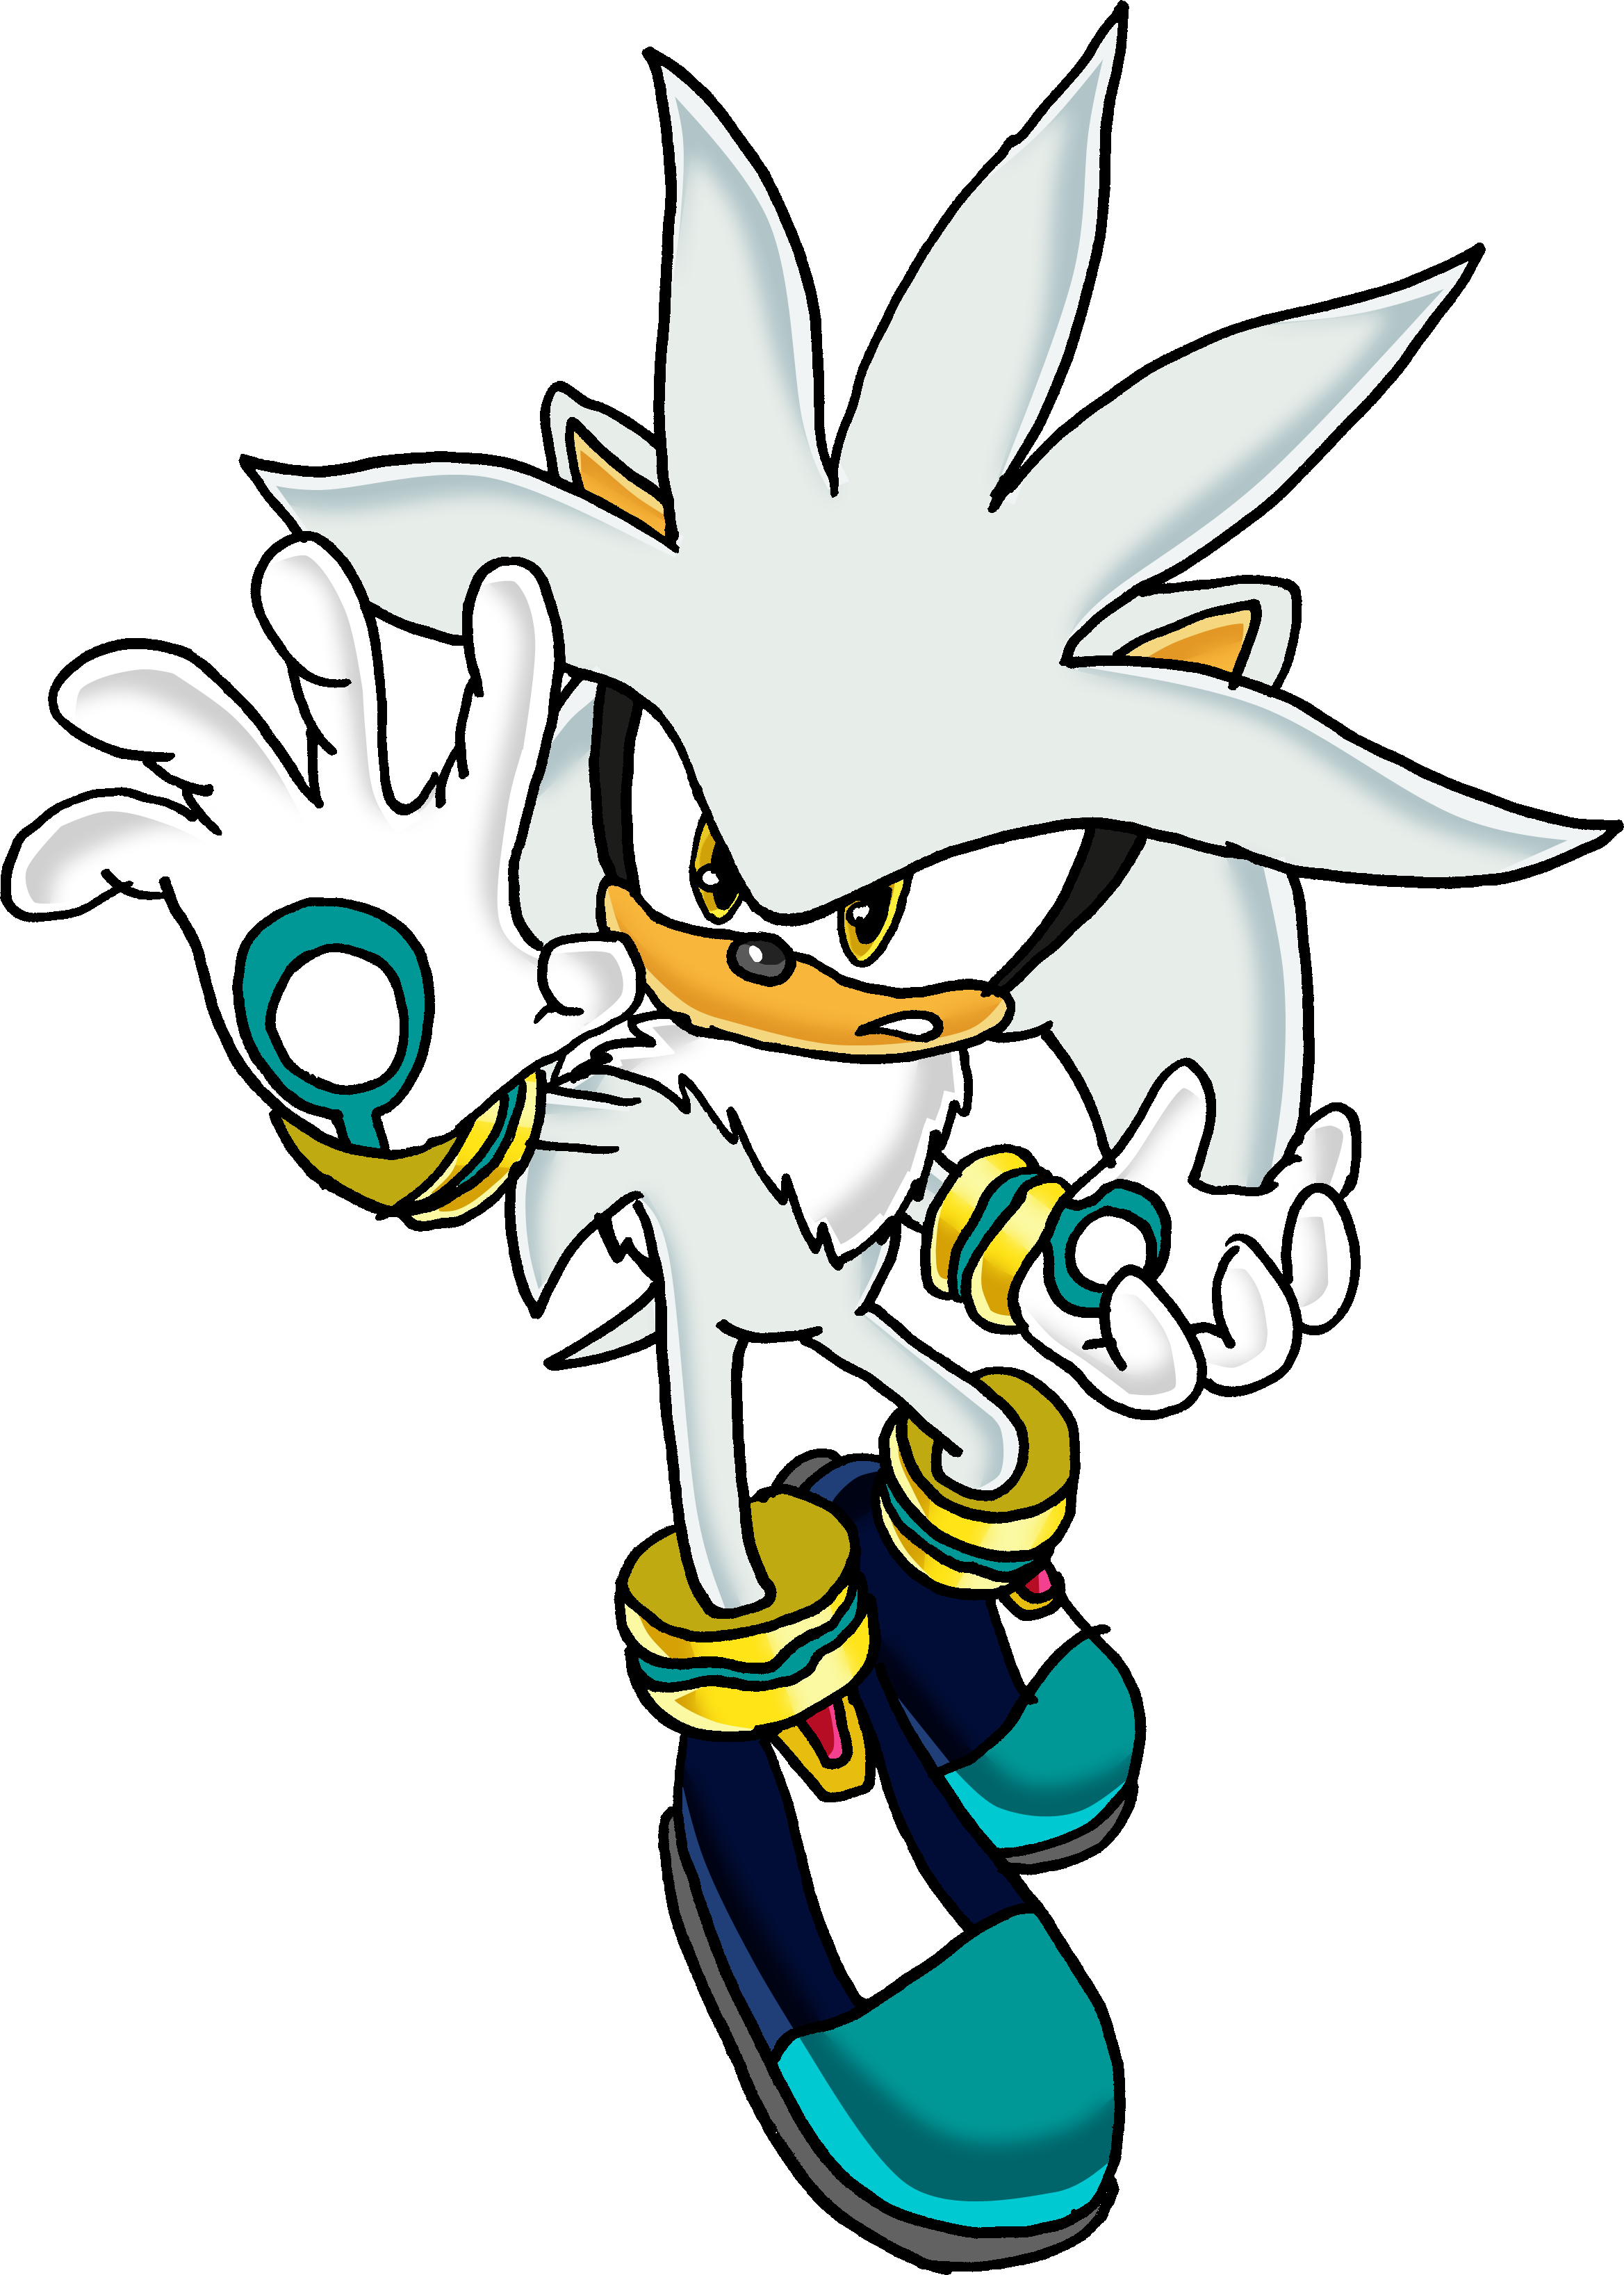 http://static3.wikia.nocookie.net/__cb20111028122317/sonic/images/c/c9/Silver_The_Hedgehog_2.png